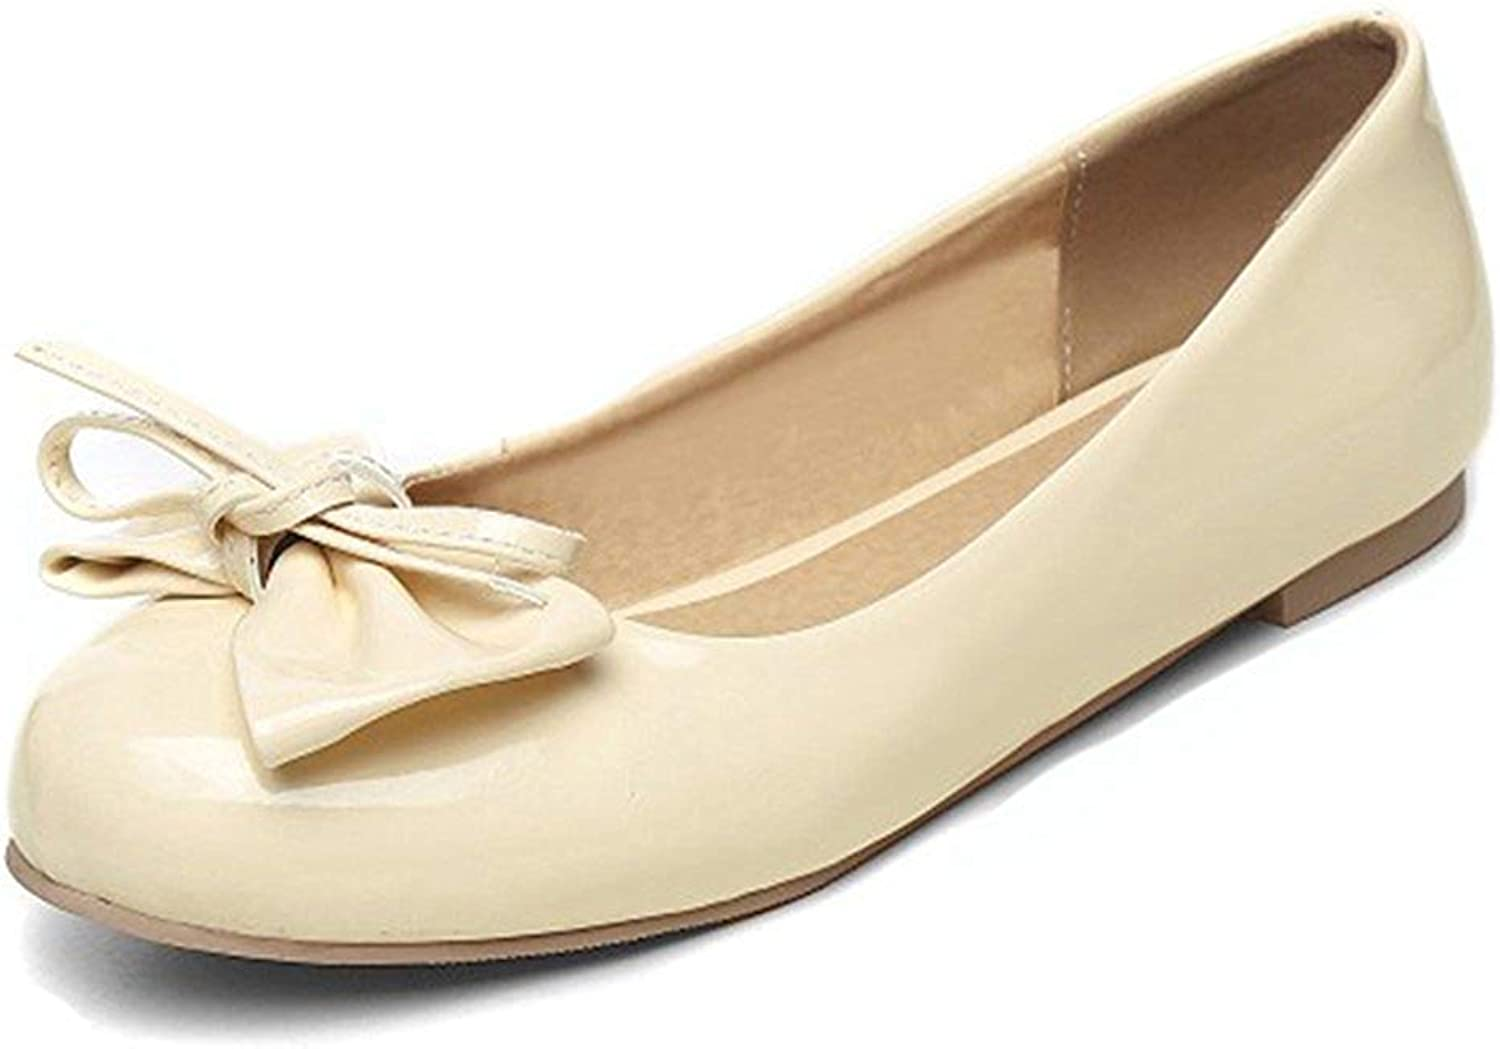 Unm Women's Cute Bowknot Low Cut Round Toe Wear to Work Slip On Flats Driving shoes